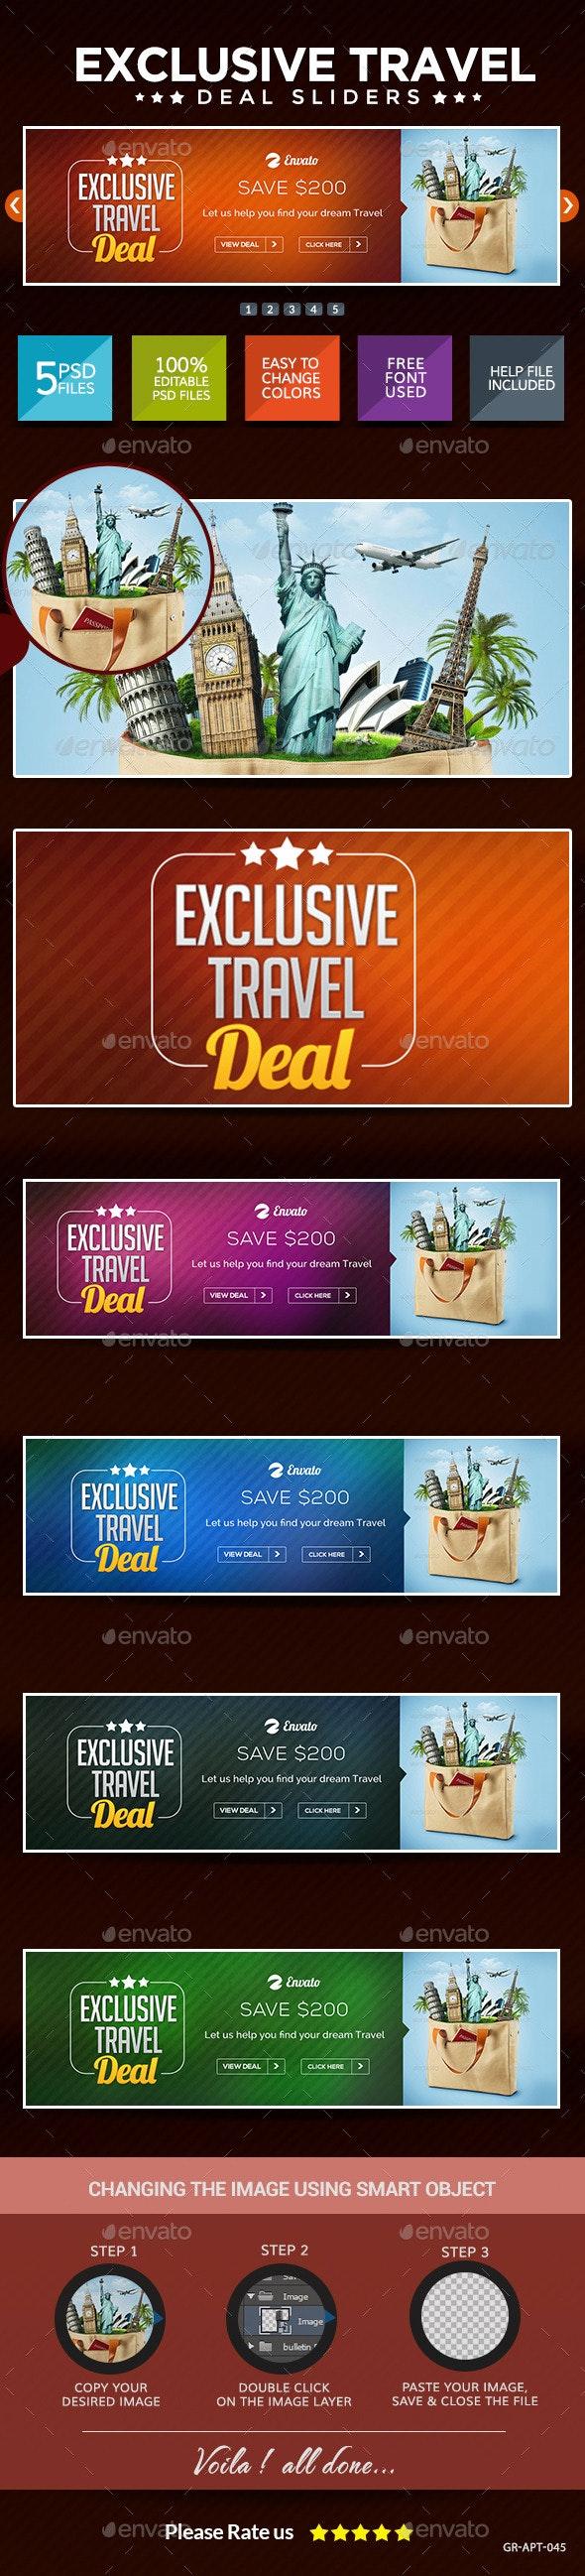 Travel Deal Sliders - Sliders & Features Web Elements